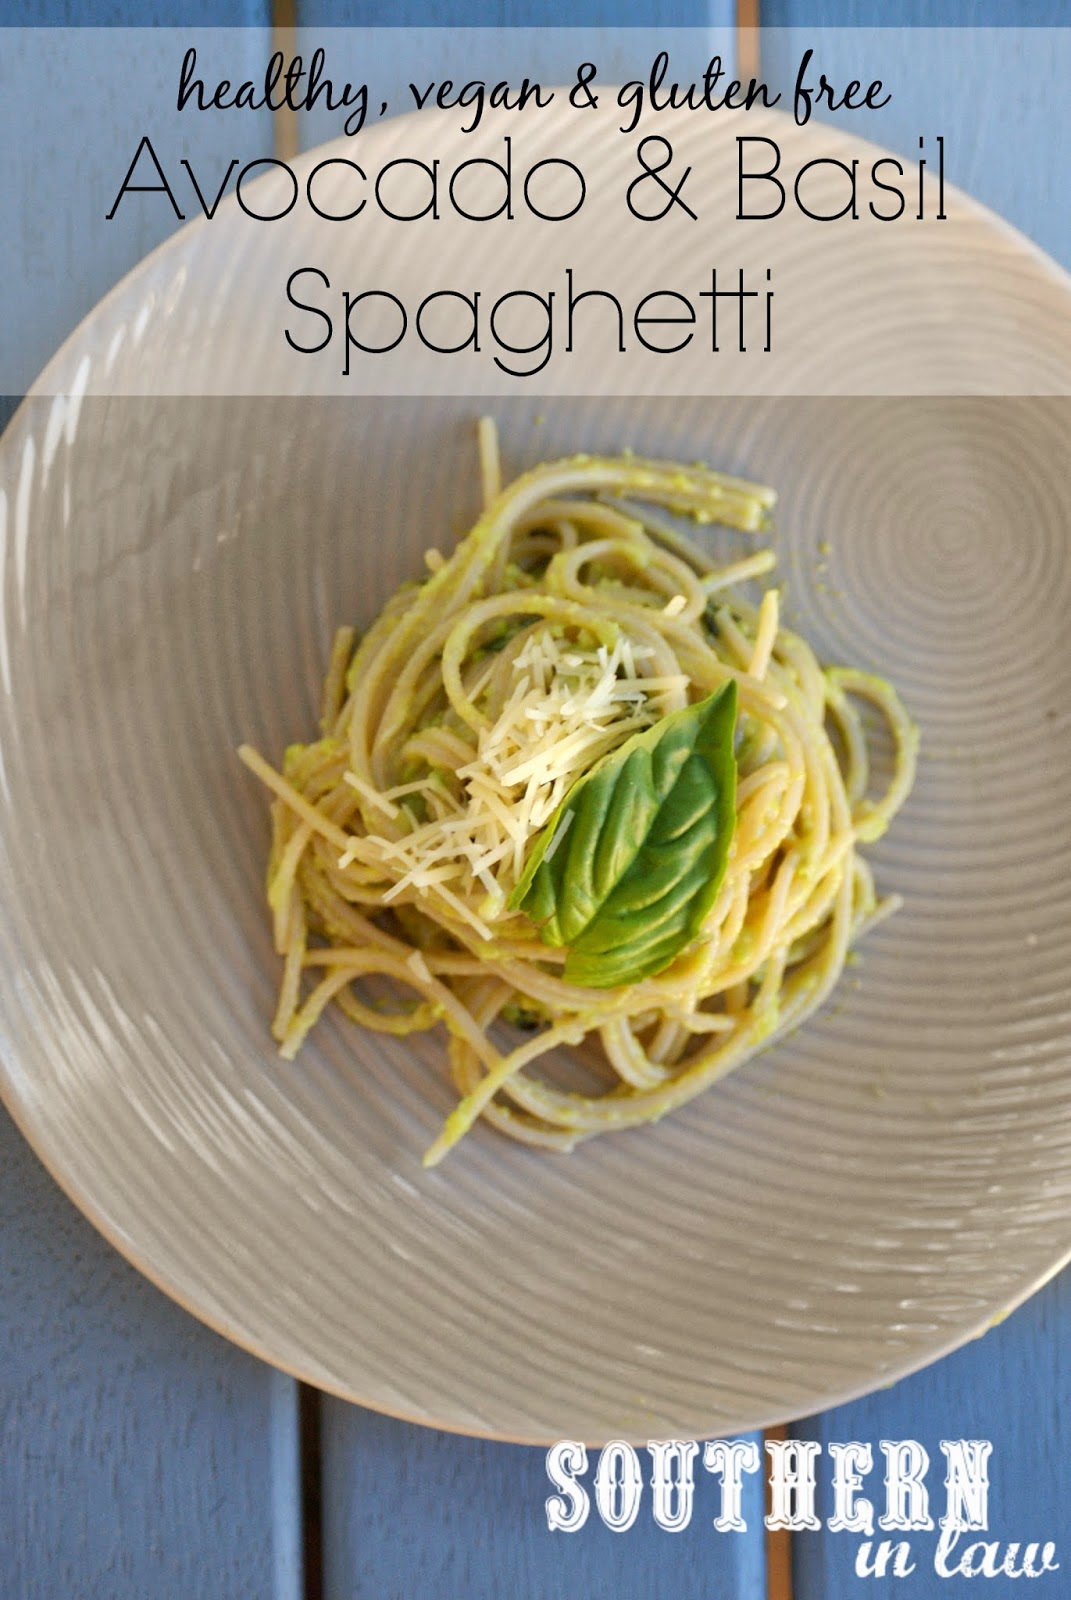 Healthy Avocado and Basil Spaghetti Recipe - low fat, gluten free, sugar free, vegan, clean eating friendly